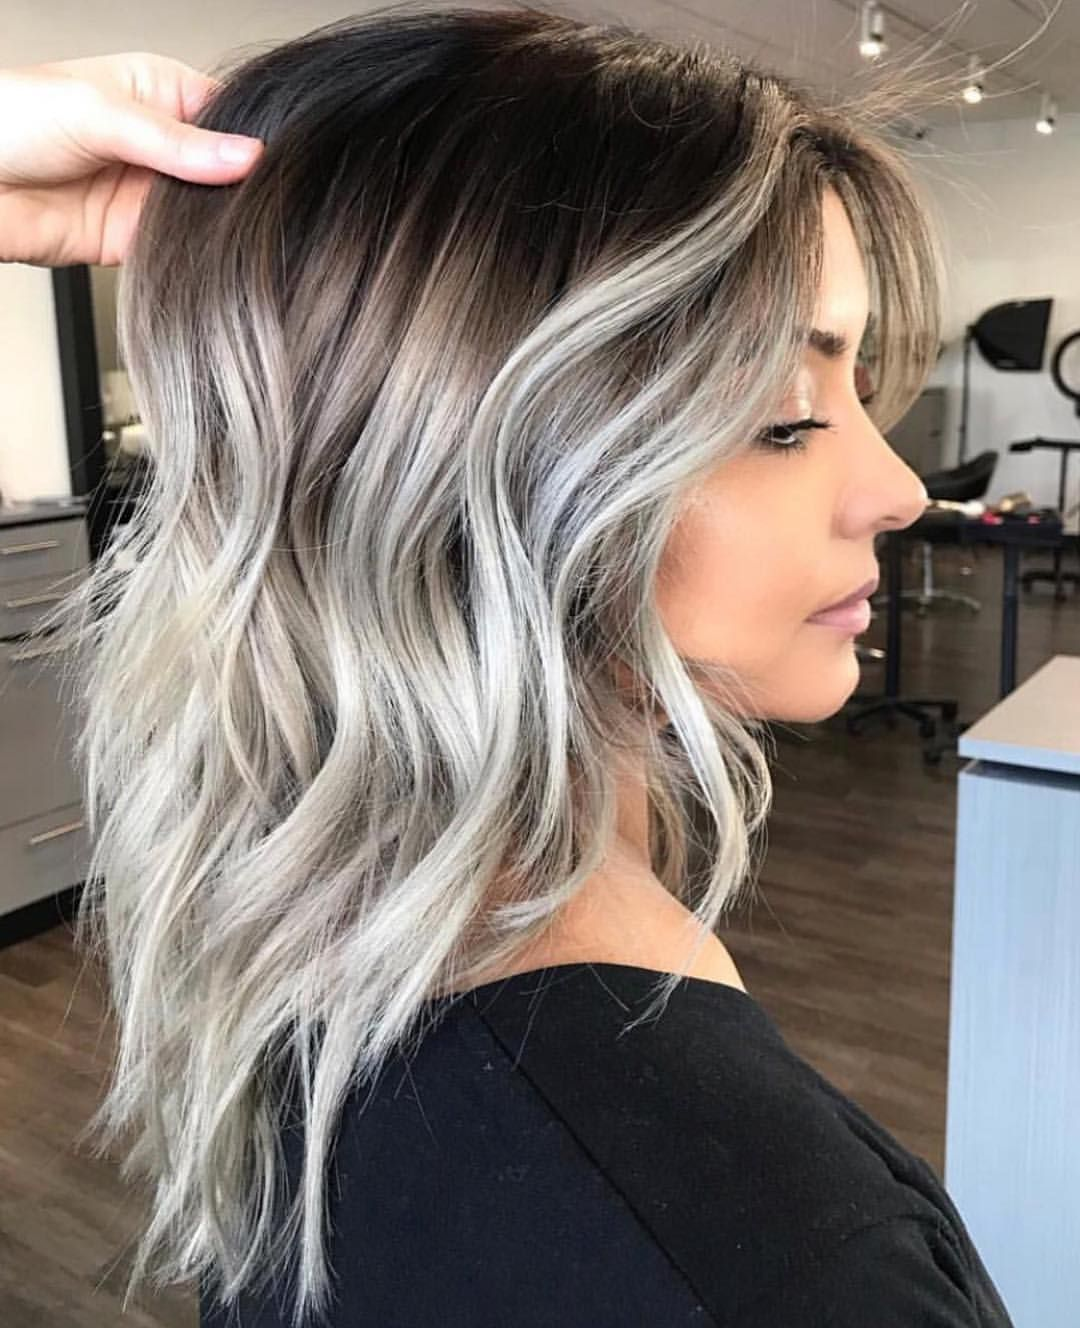 Smokeee Monicasilacci Hair Styles Spring Hair Color Silver Ombre Hair